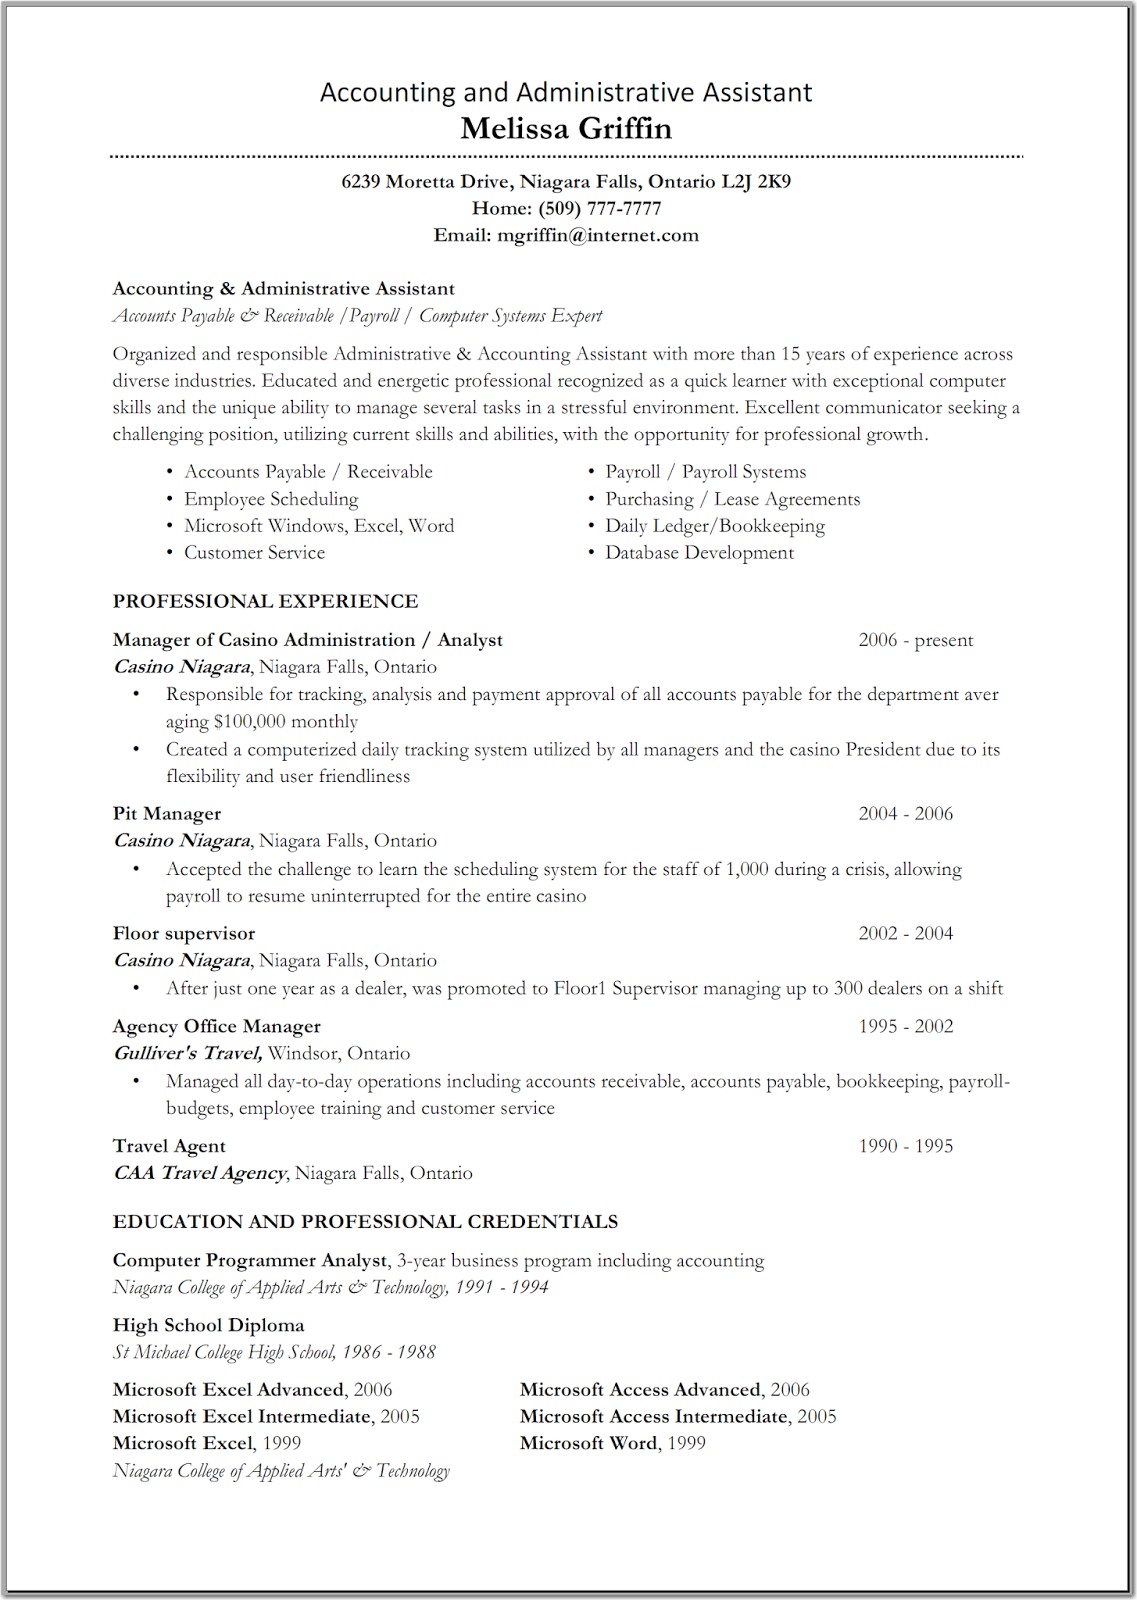 accounting assistant resume resume cv accounting assistant resume